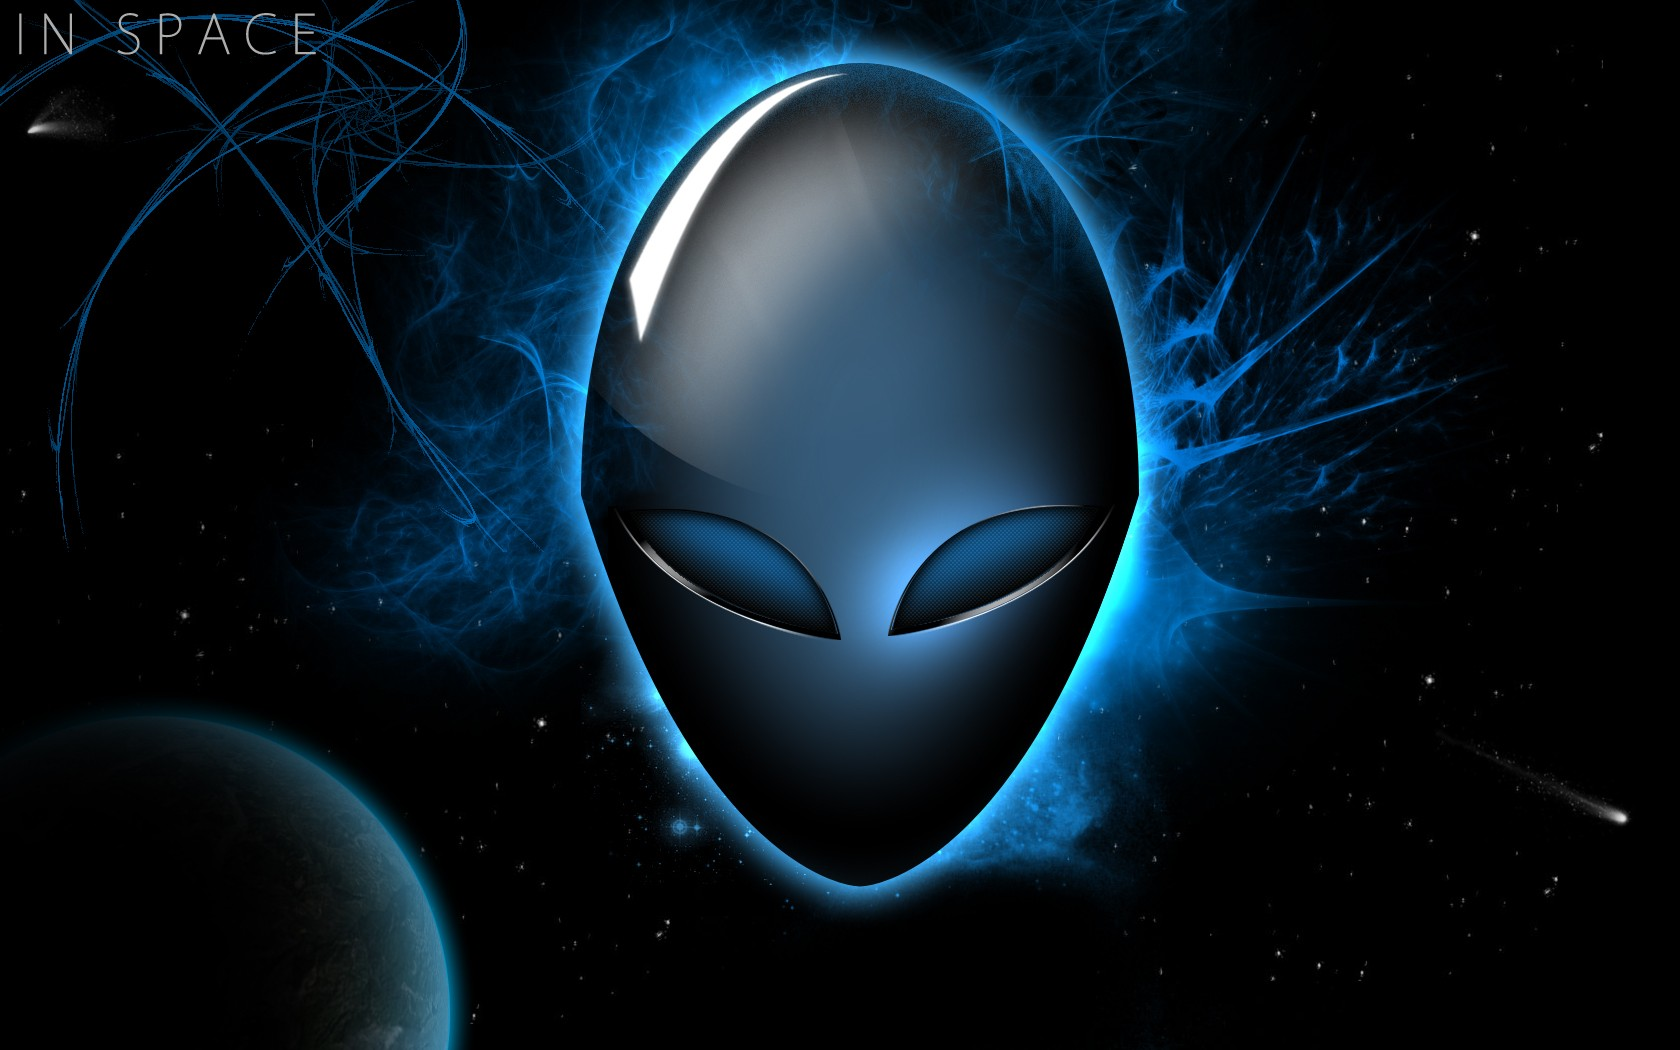 Alien Space Hd Wallpapers 1680x1050 pixel Space HD Wallpaper 32054 1680x1050